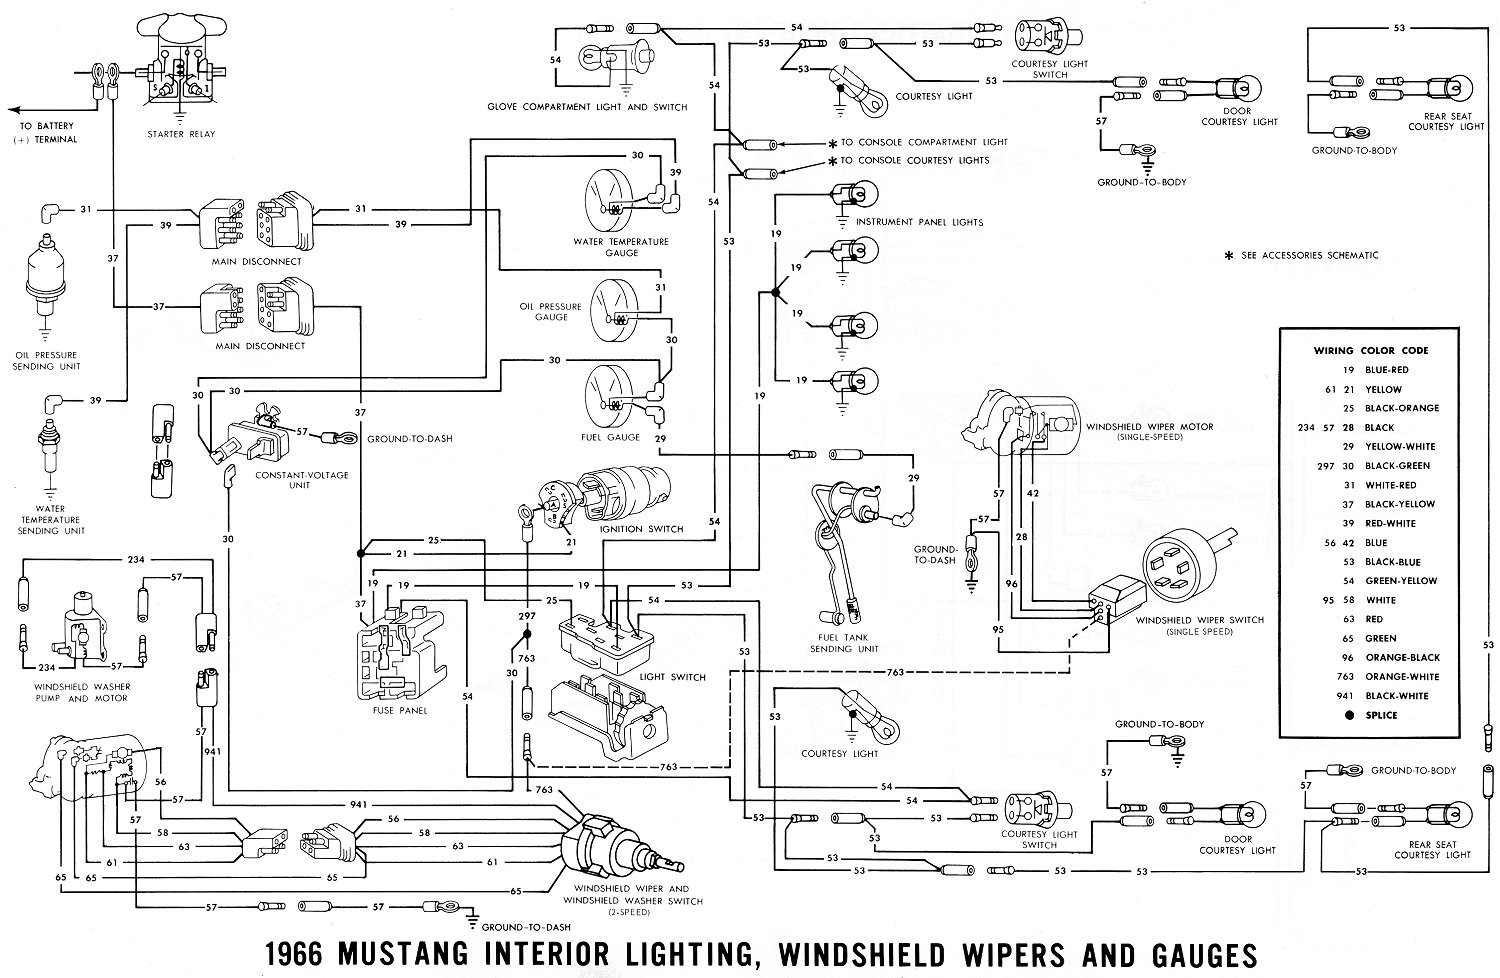 1966 Mustang Courtesy Light Wiring Diagram Opinions About 69 Alternator Diagrams Average Joe Restoration Rh Averagejoerestoration Com 1965 Headlight